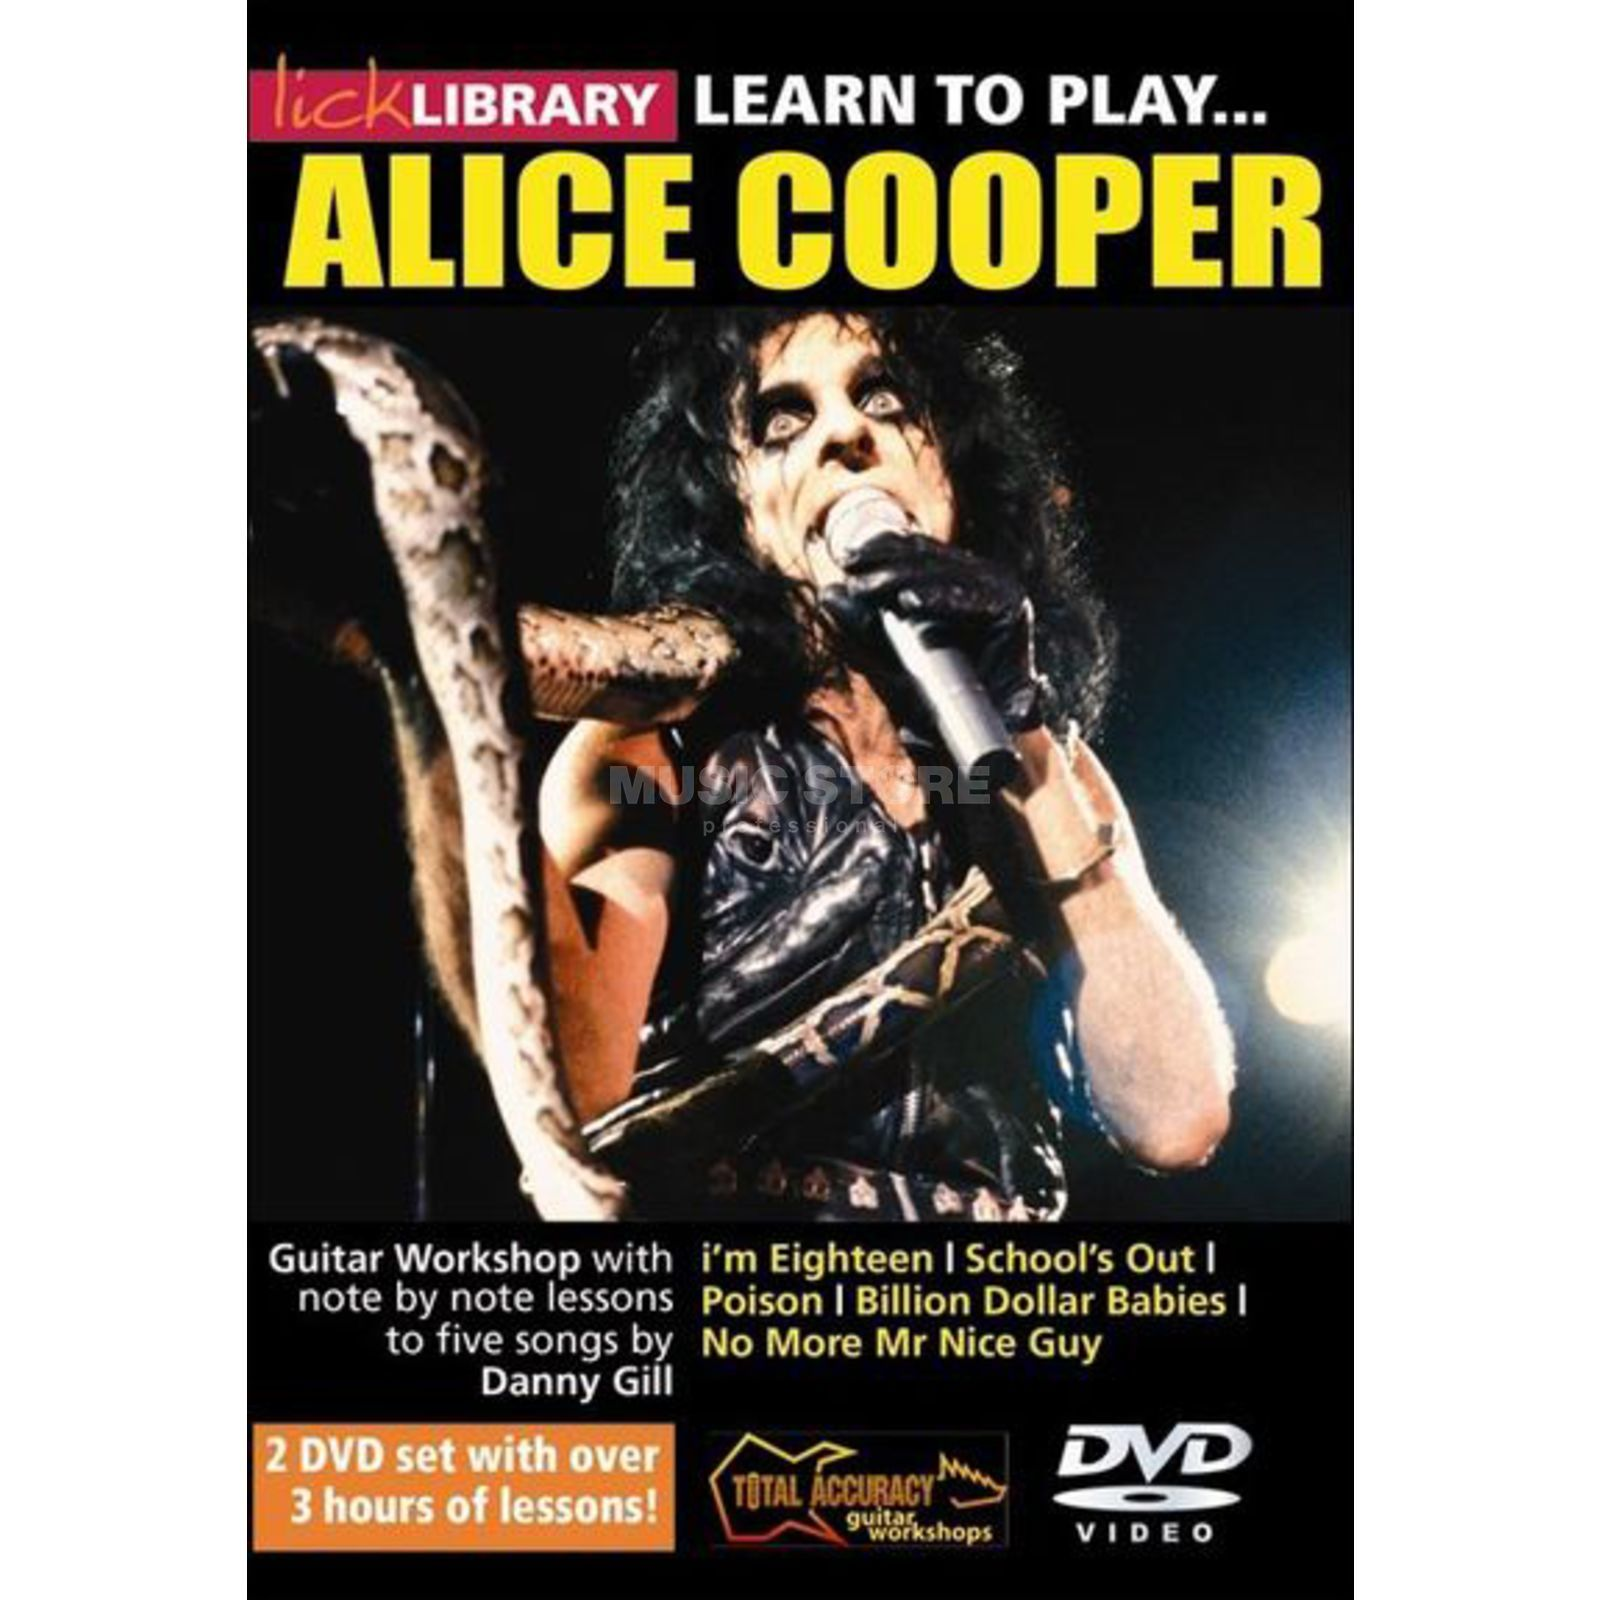 Roadrock International Lick Library: Learn To Play Alice Cooper DVD Produktbillede